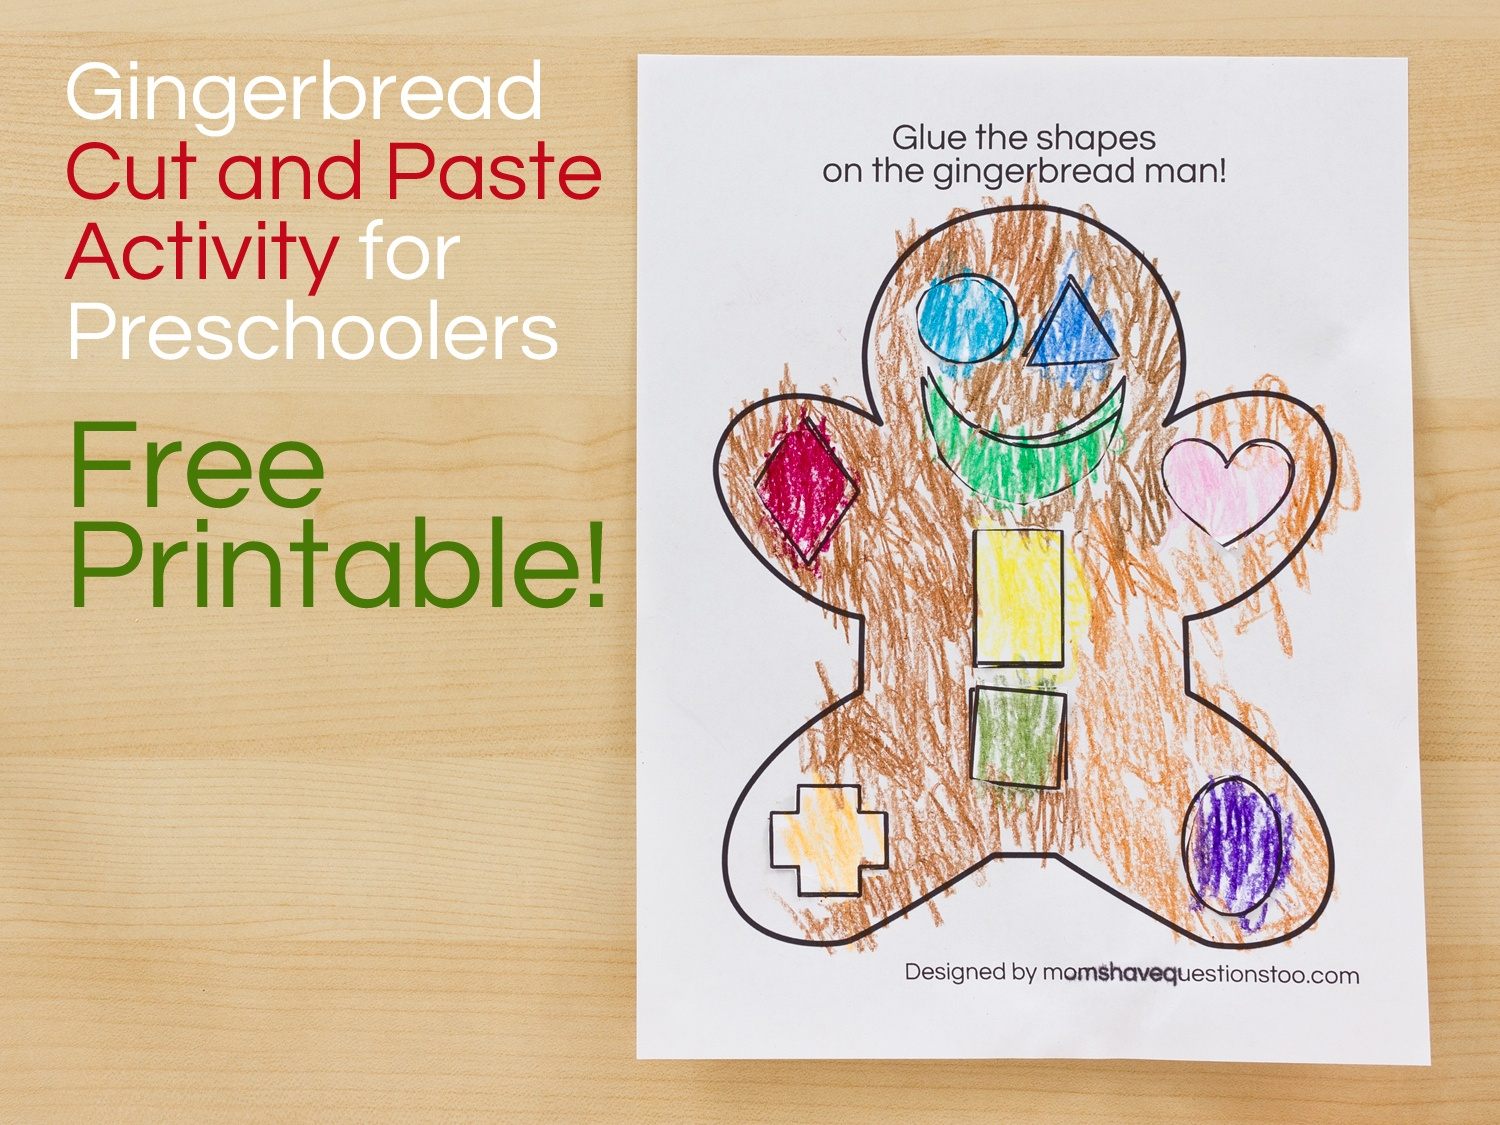 Gingerbread Man Cut And Paste Preschool Activity - Moms Have - Free Printable Gingerbread Man Activities